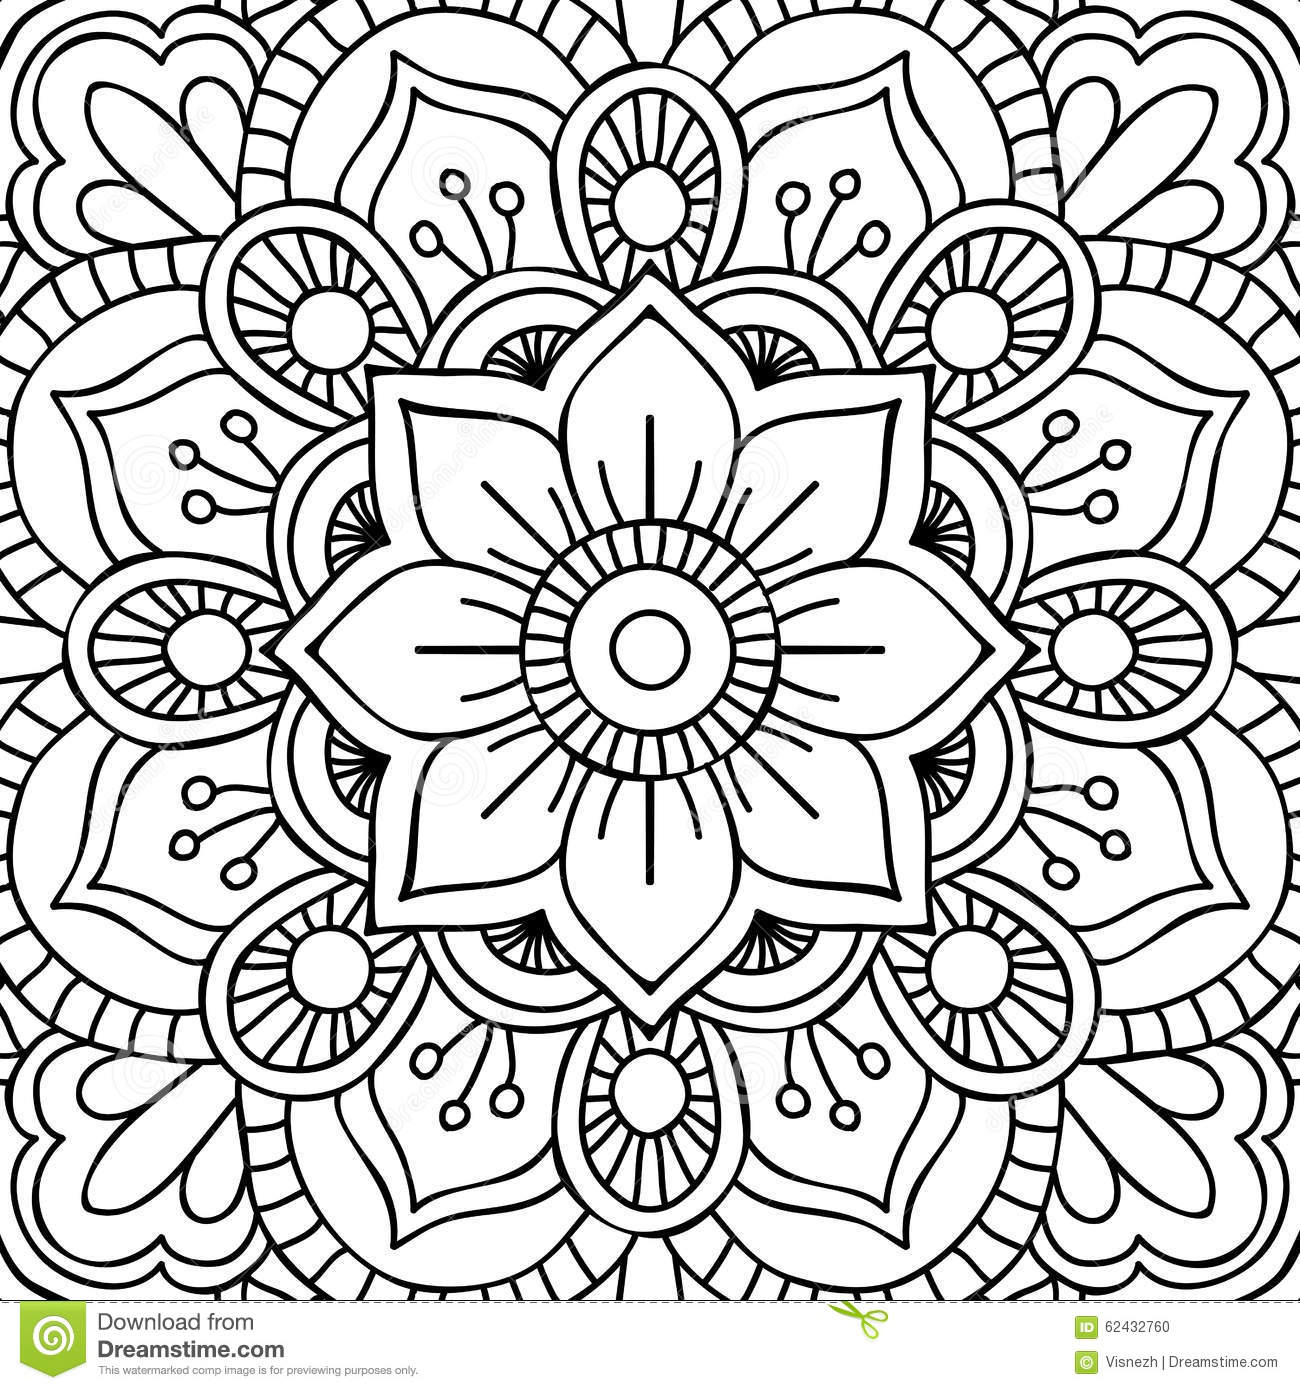 - Mandala Coloring Pages Coloring Page Mandala Coloring Pagesntable